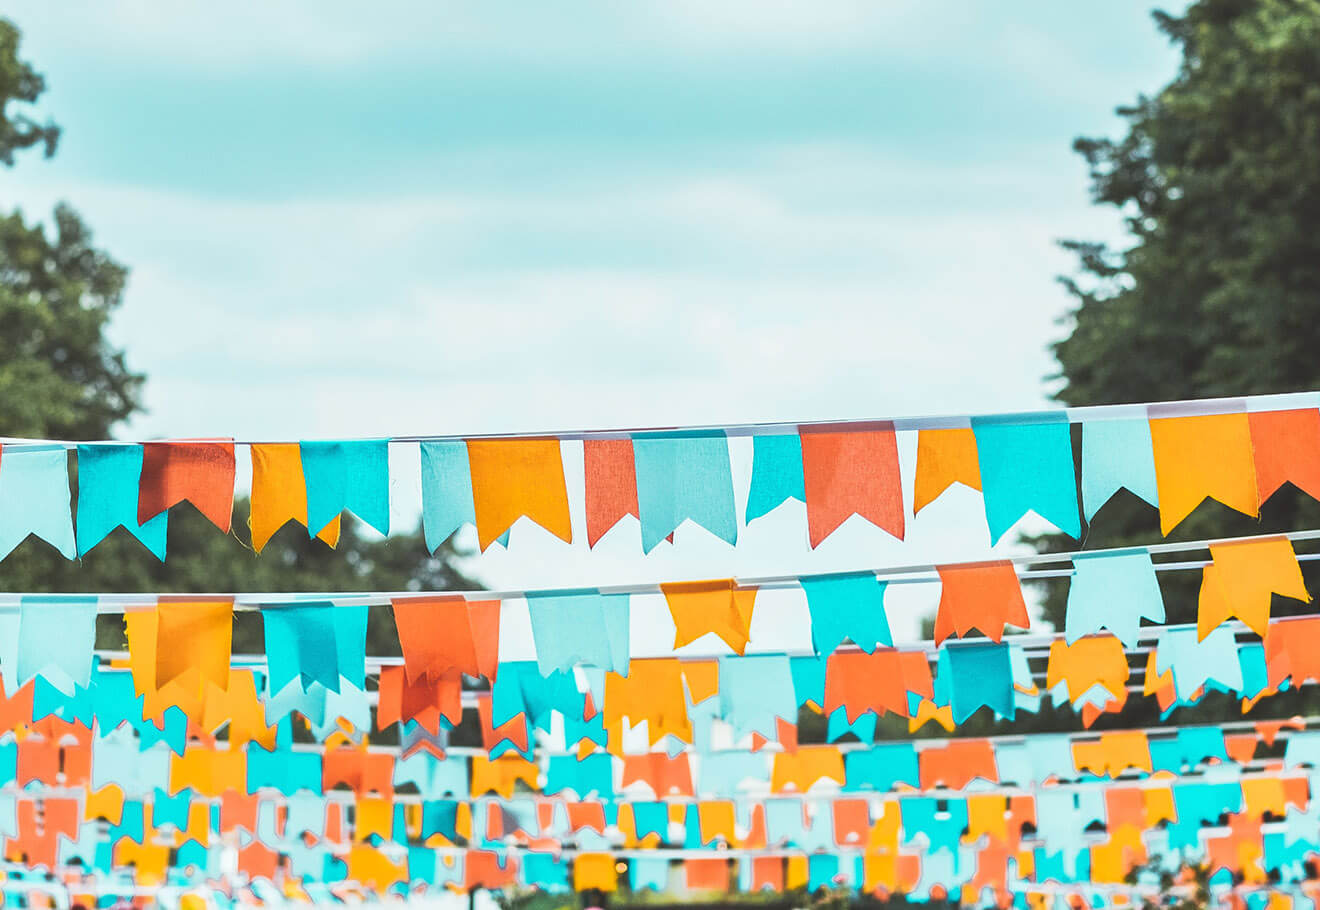 Colourful bunting decor at an outdoor party